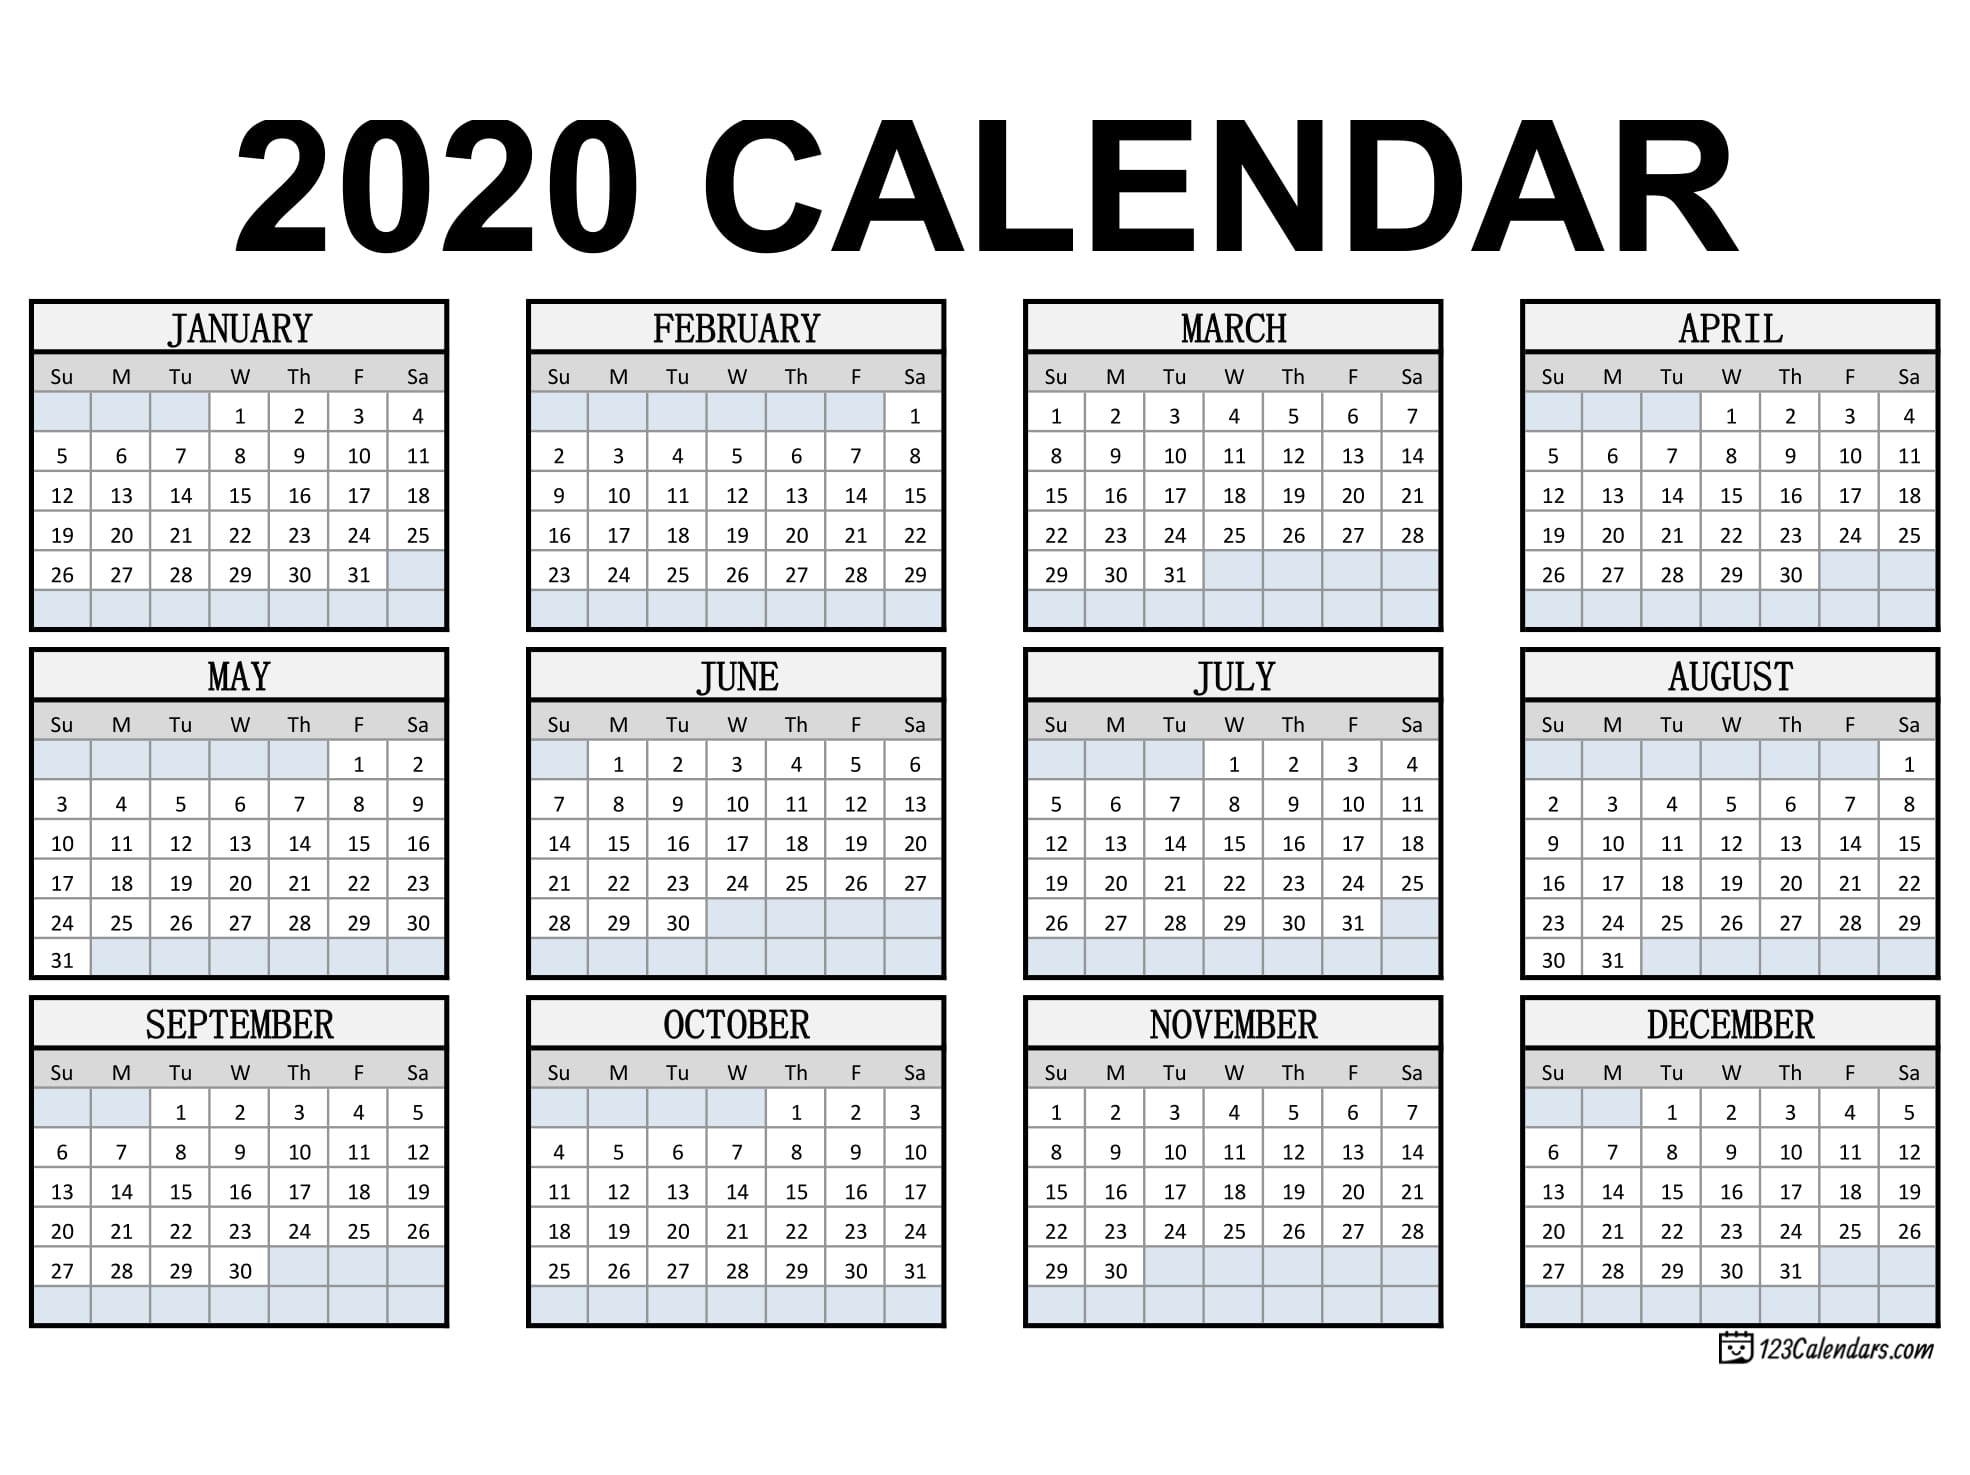 Free Printable 2020 Calendar | 123Calendars for Free Printable Pocket Size Calanders